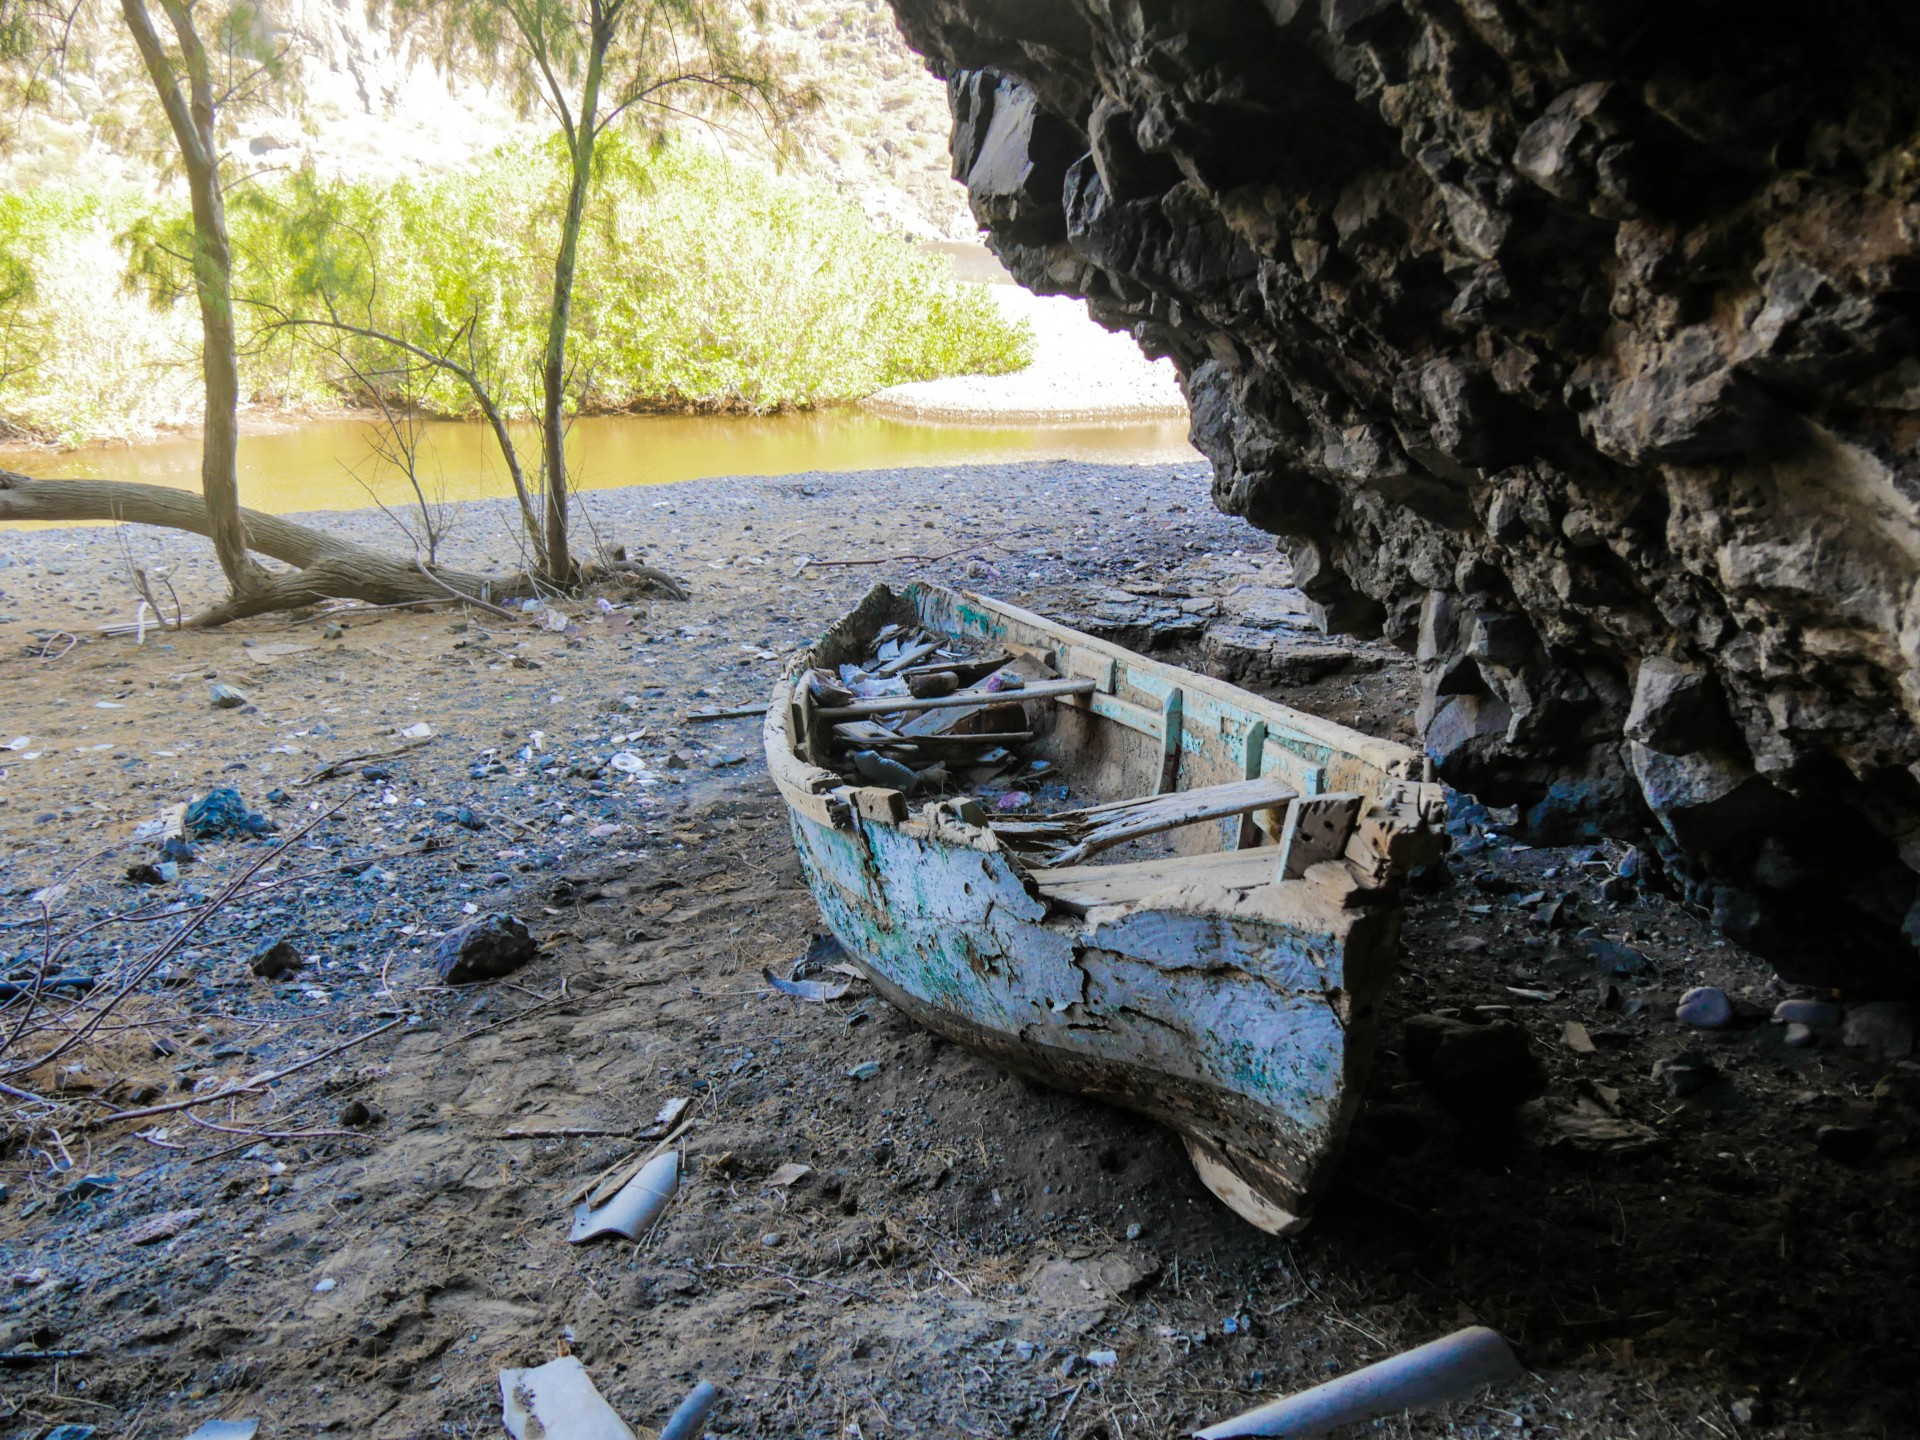 The boat in the cave.